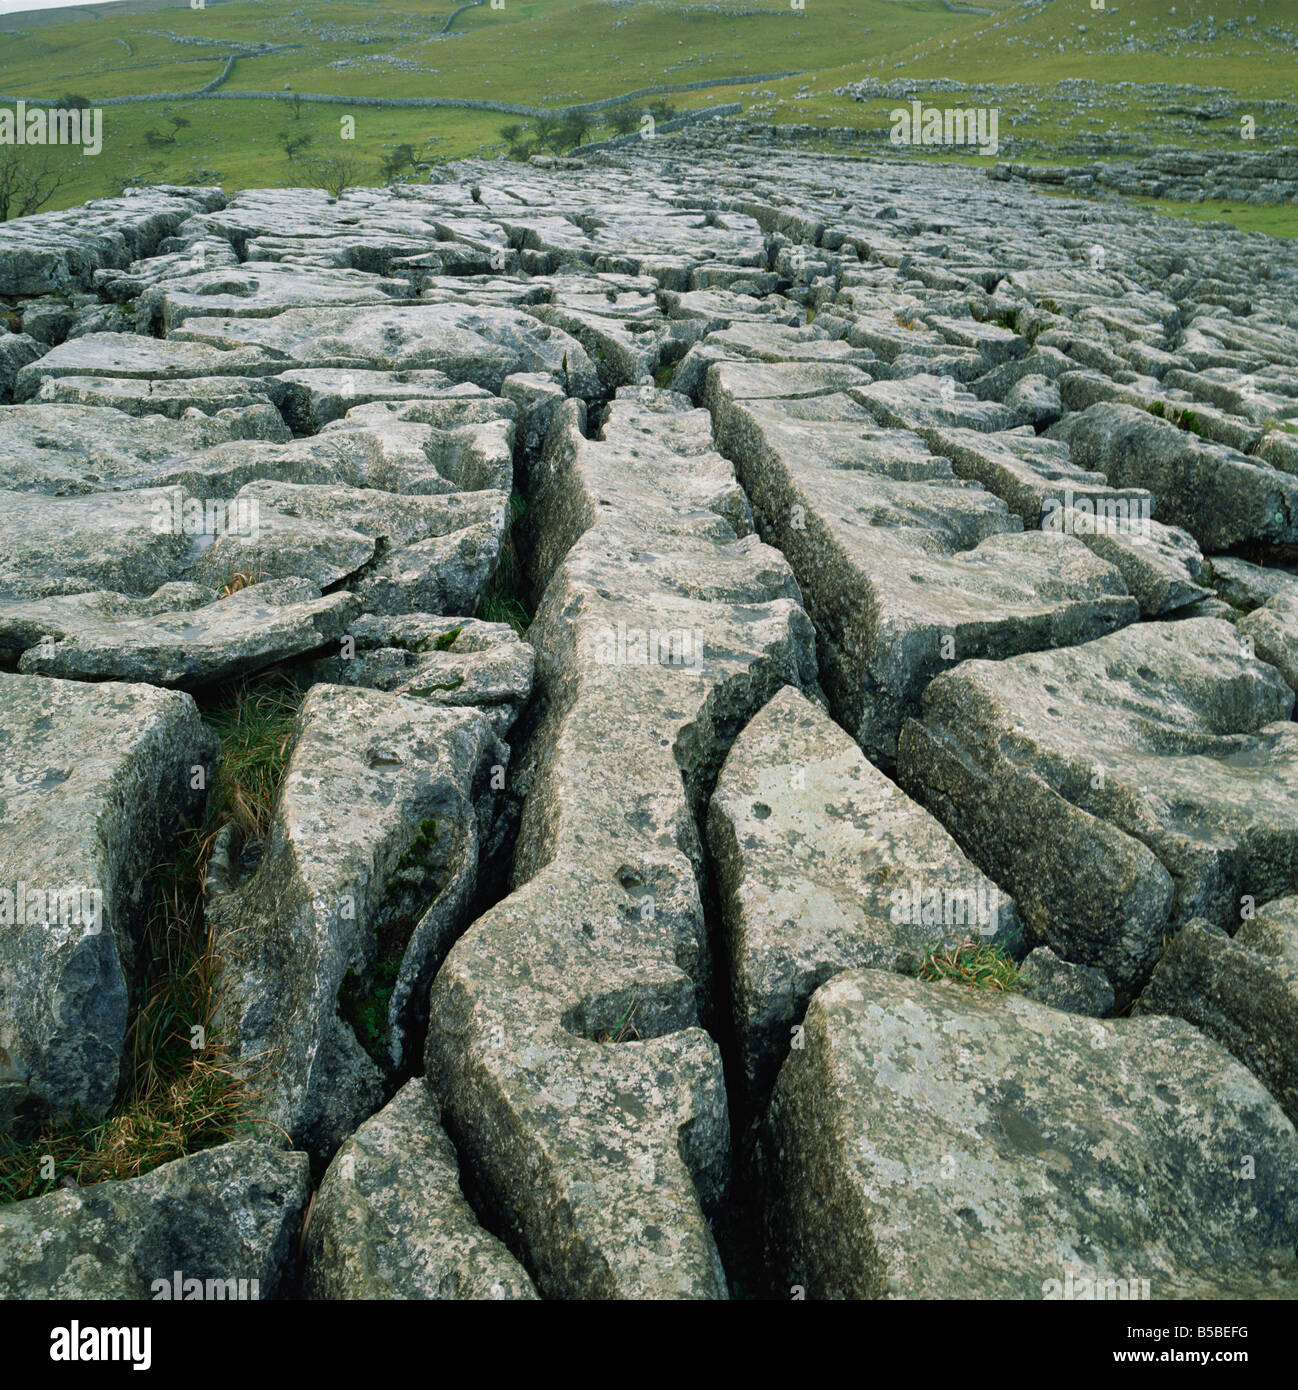 Limestone pavement, Malham, Yorkshire Dales National Park, North Yorkshire, Yorkshire, England, Europe - Stock Image